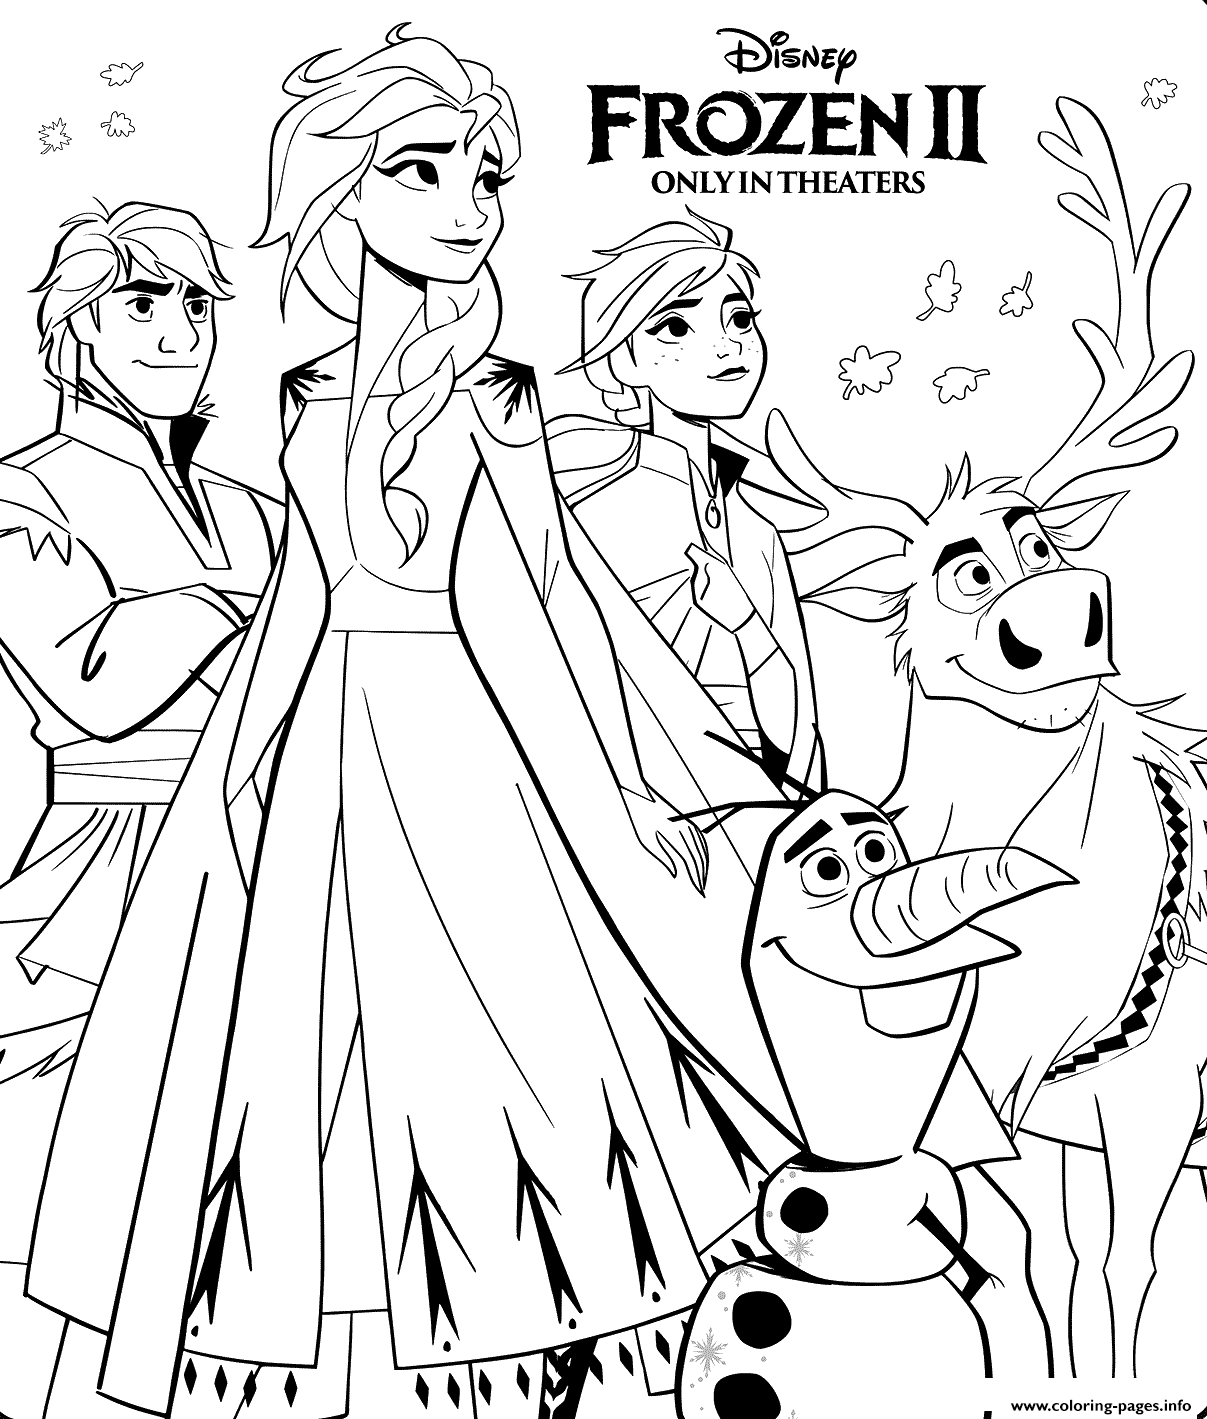 Disney Frozen 2 Coloring Pages Printable